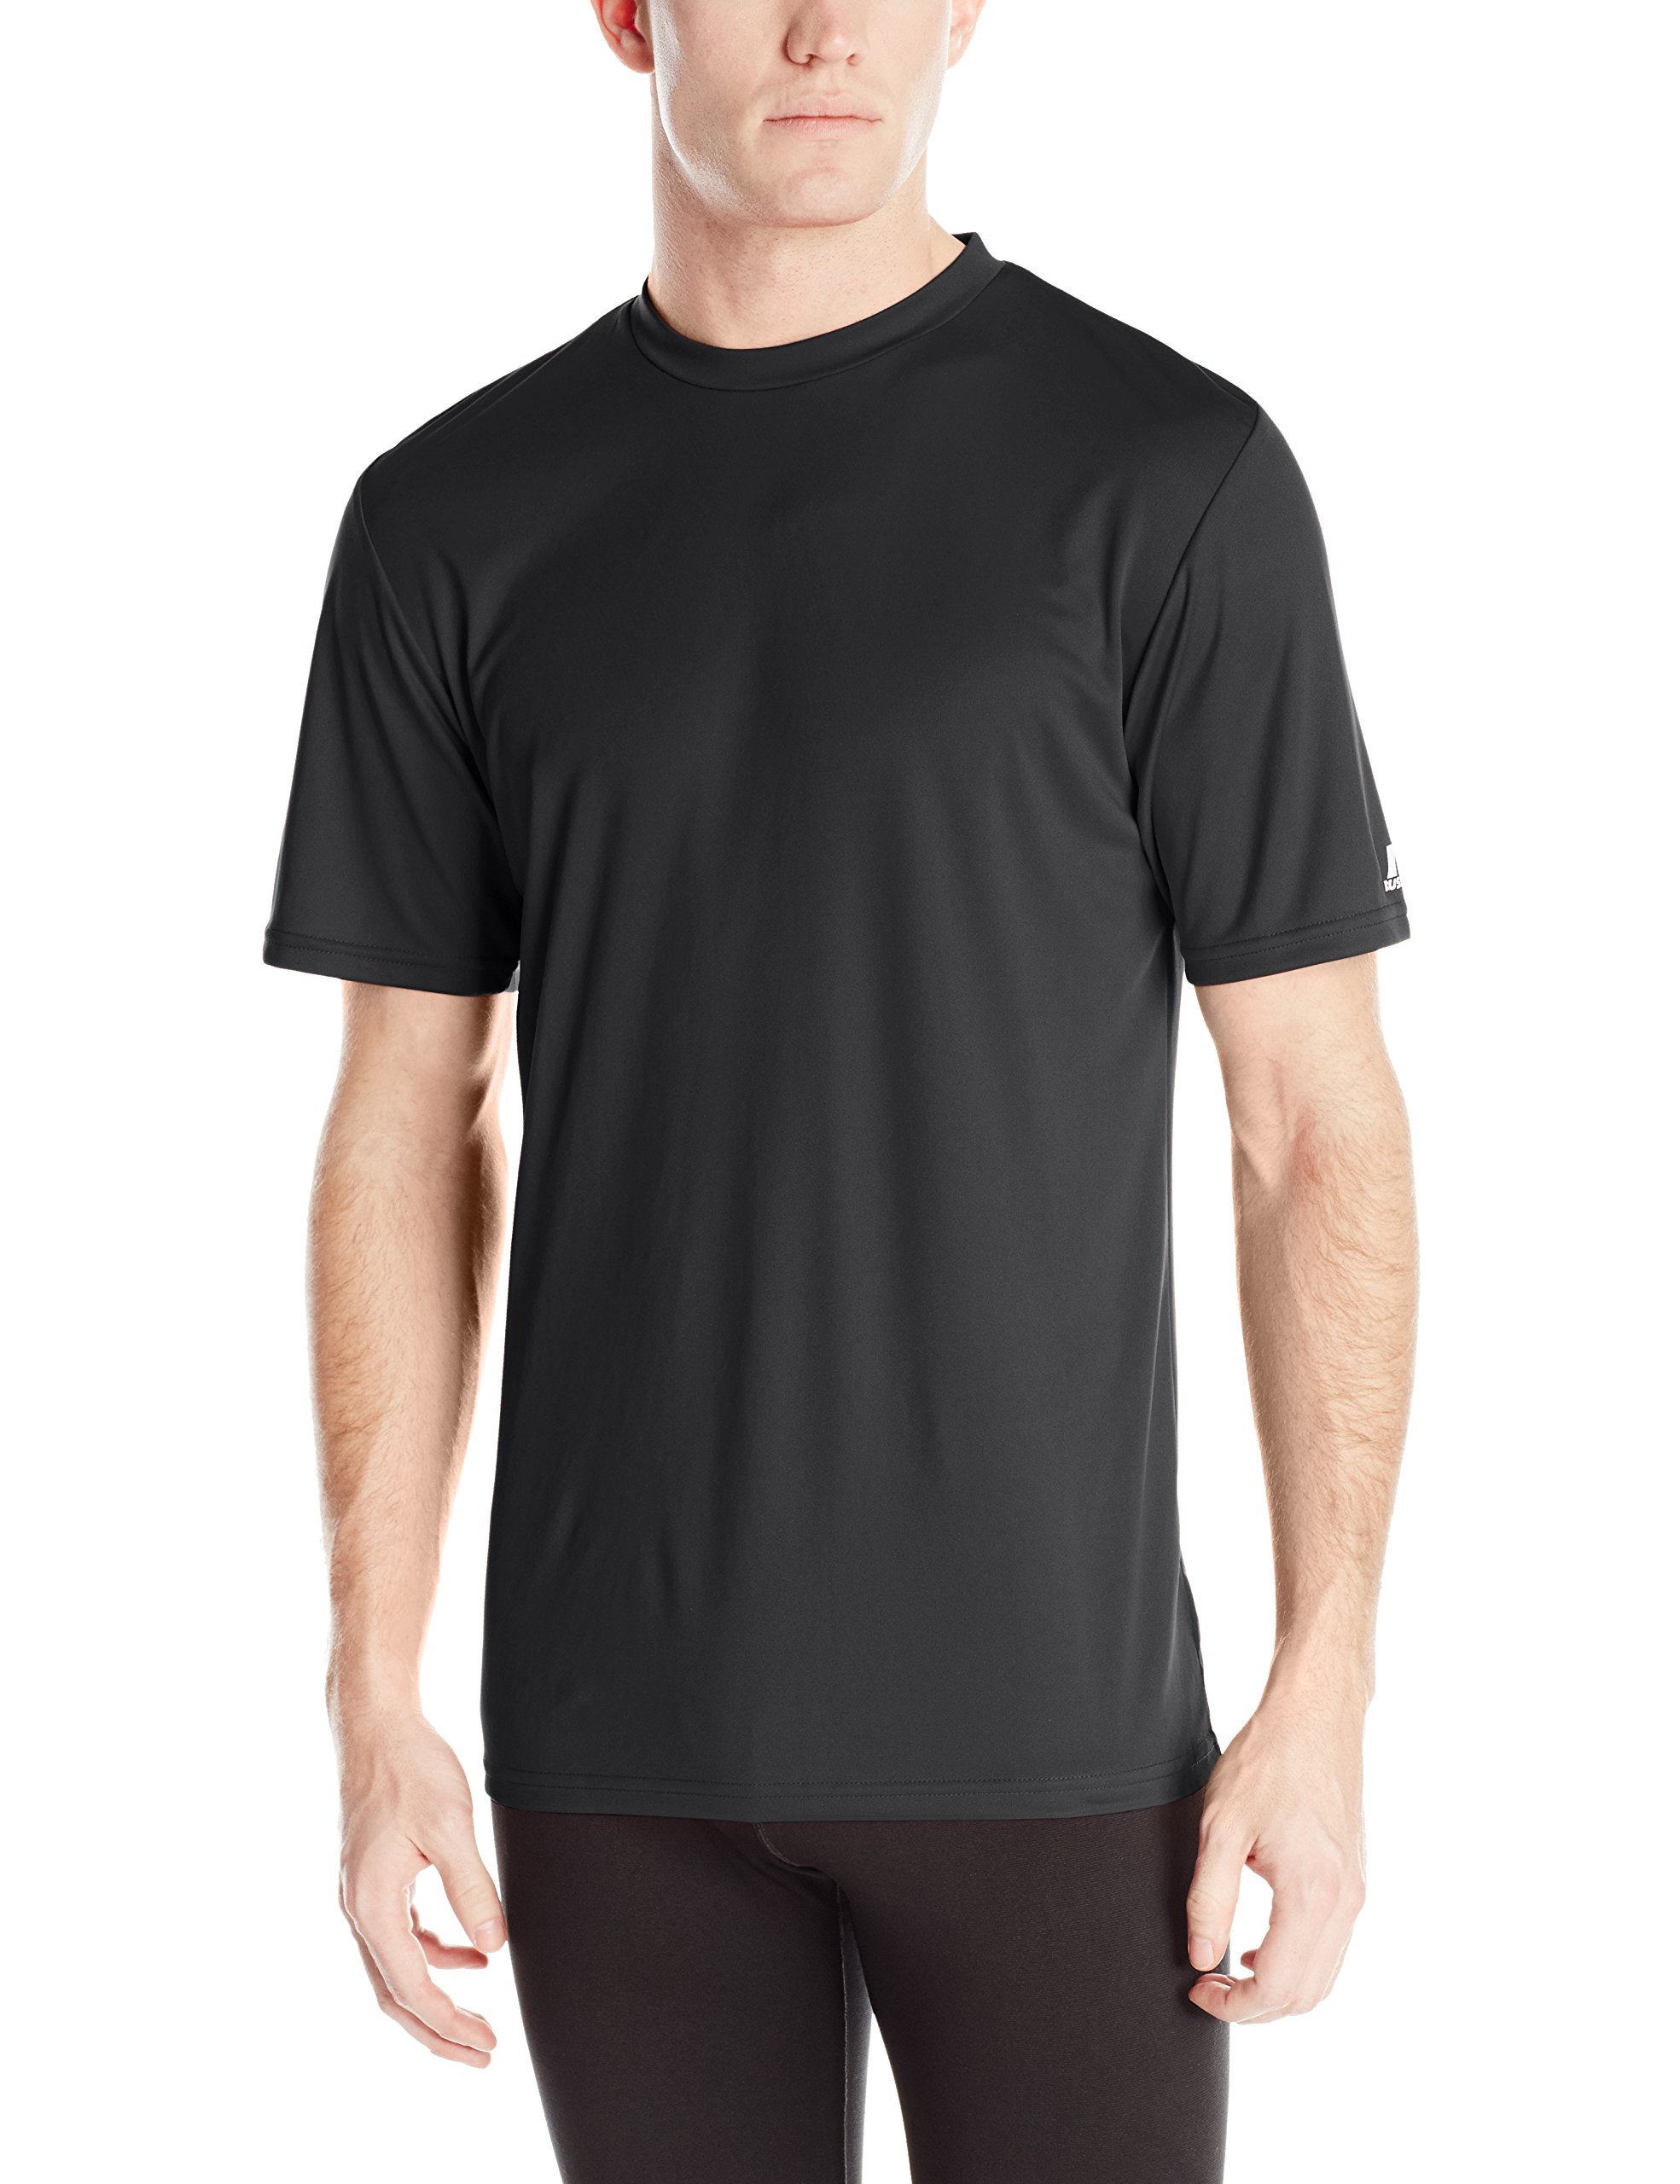 Russell Athletic Men's Performance T-Shirt, Black, X-Large by Russell Athletic